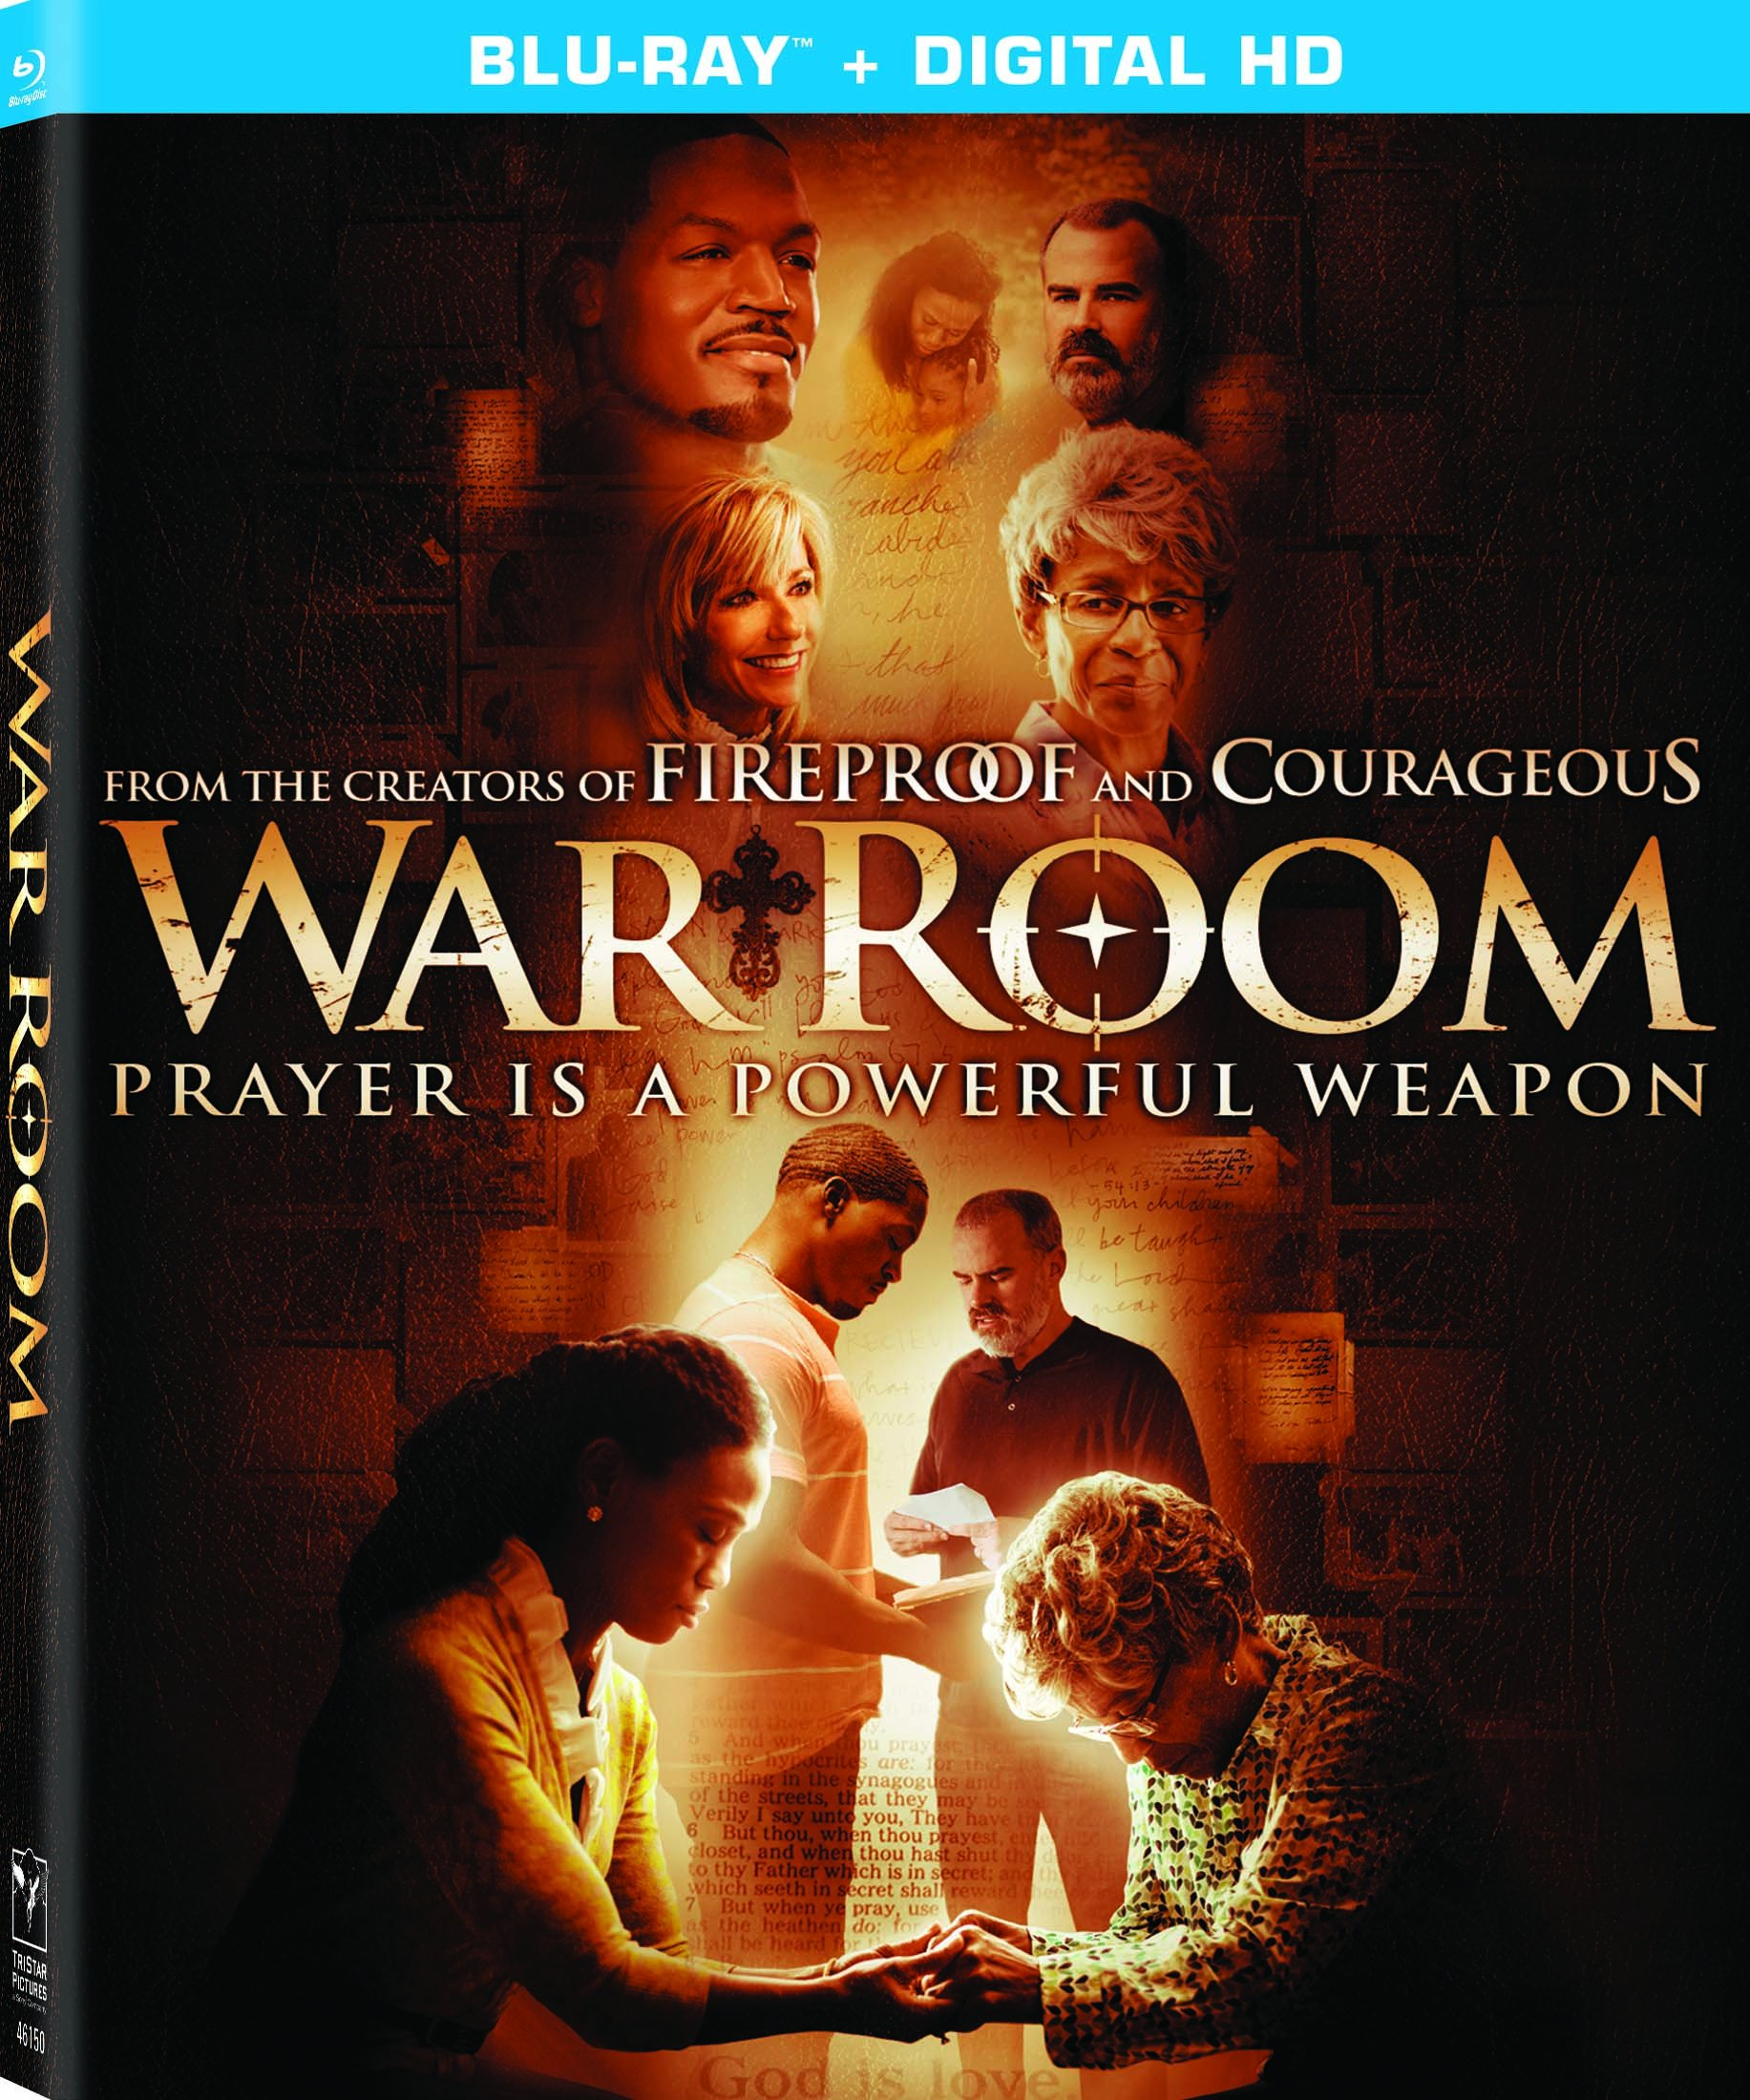 War Room Blu-ray Review